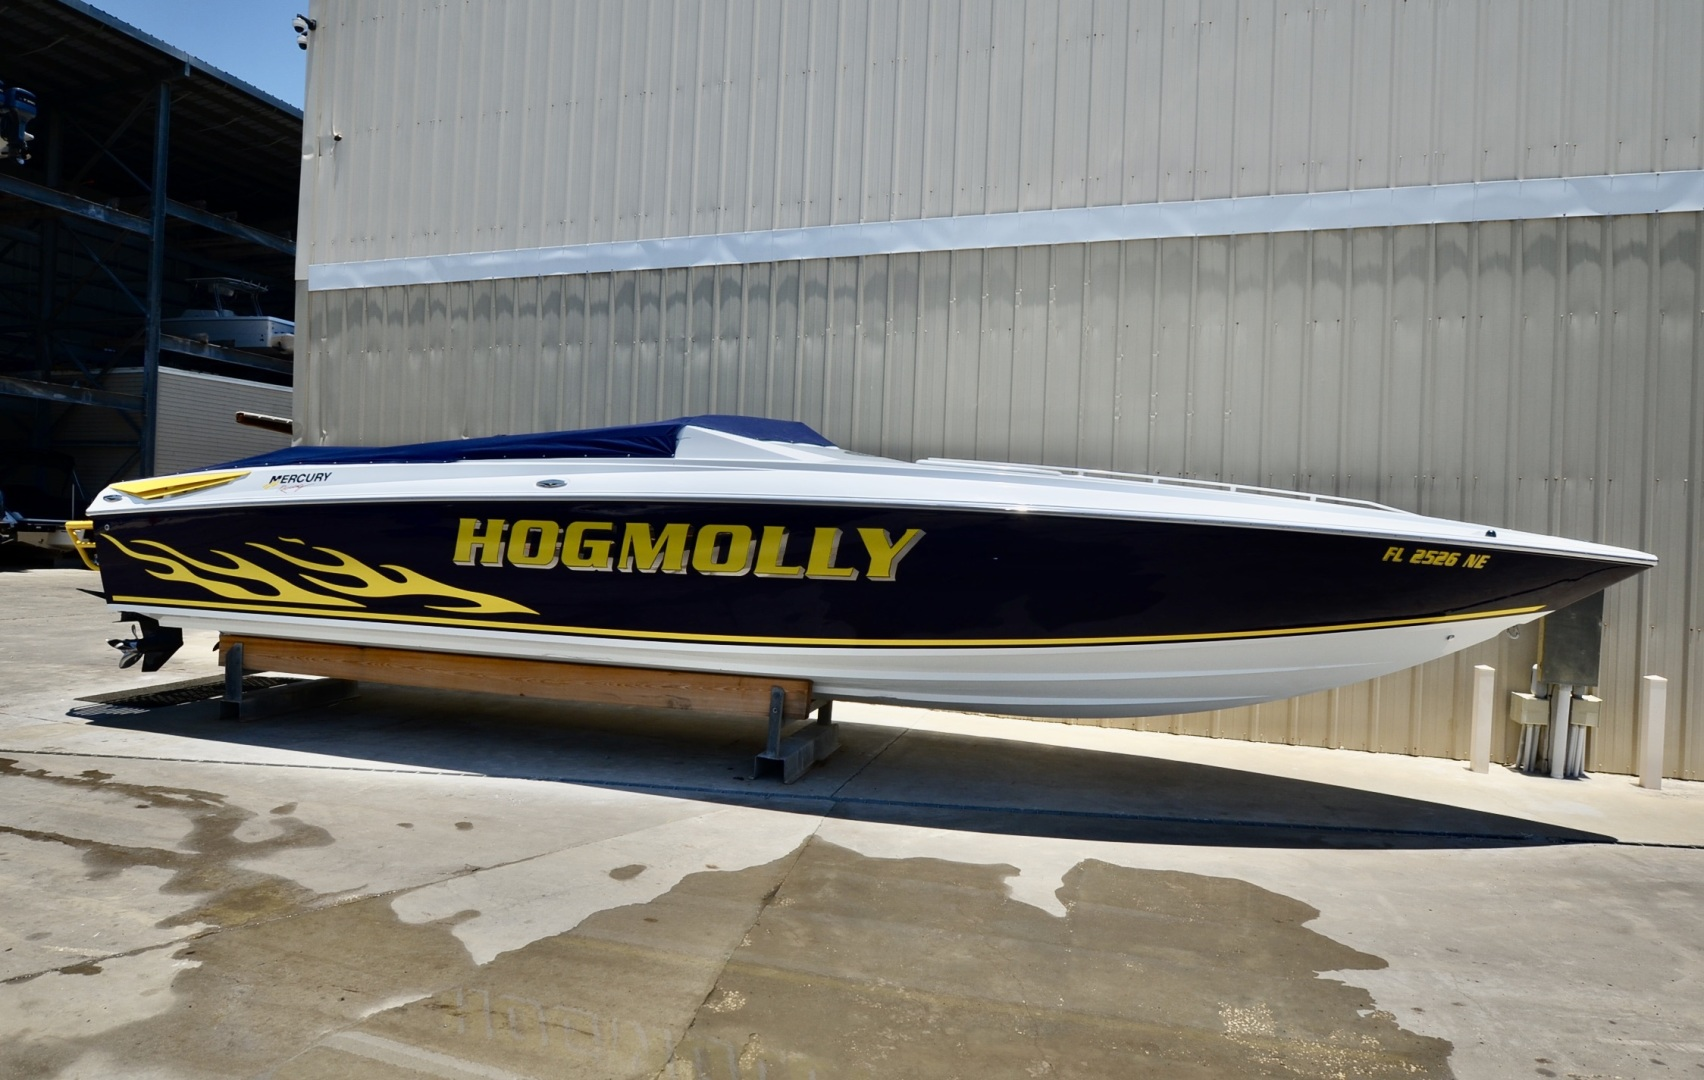 Baja-35 Outlaw 2006-HOGMOLLY Tarpon Springs-Florida-United States-1429249 | Thumbnail